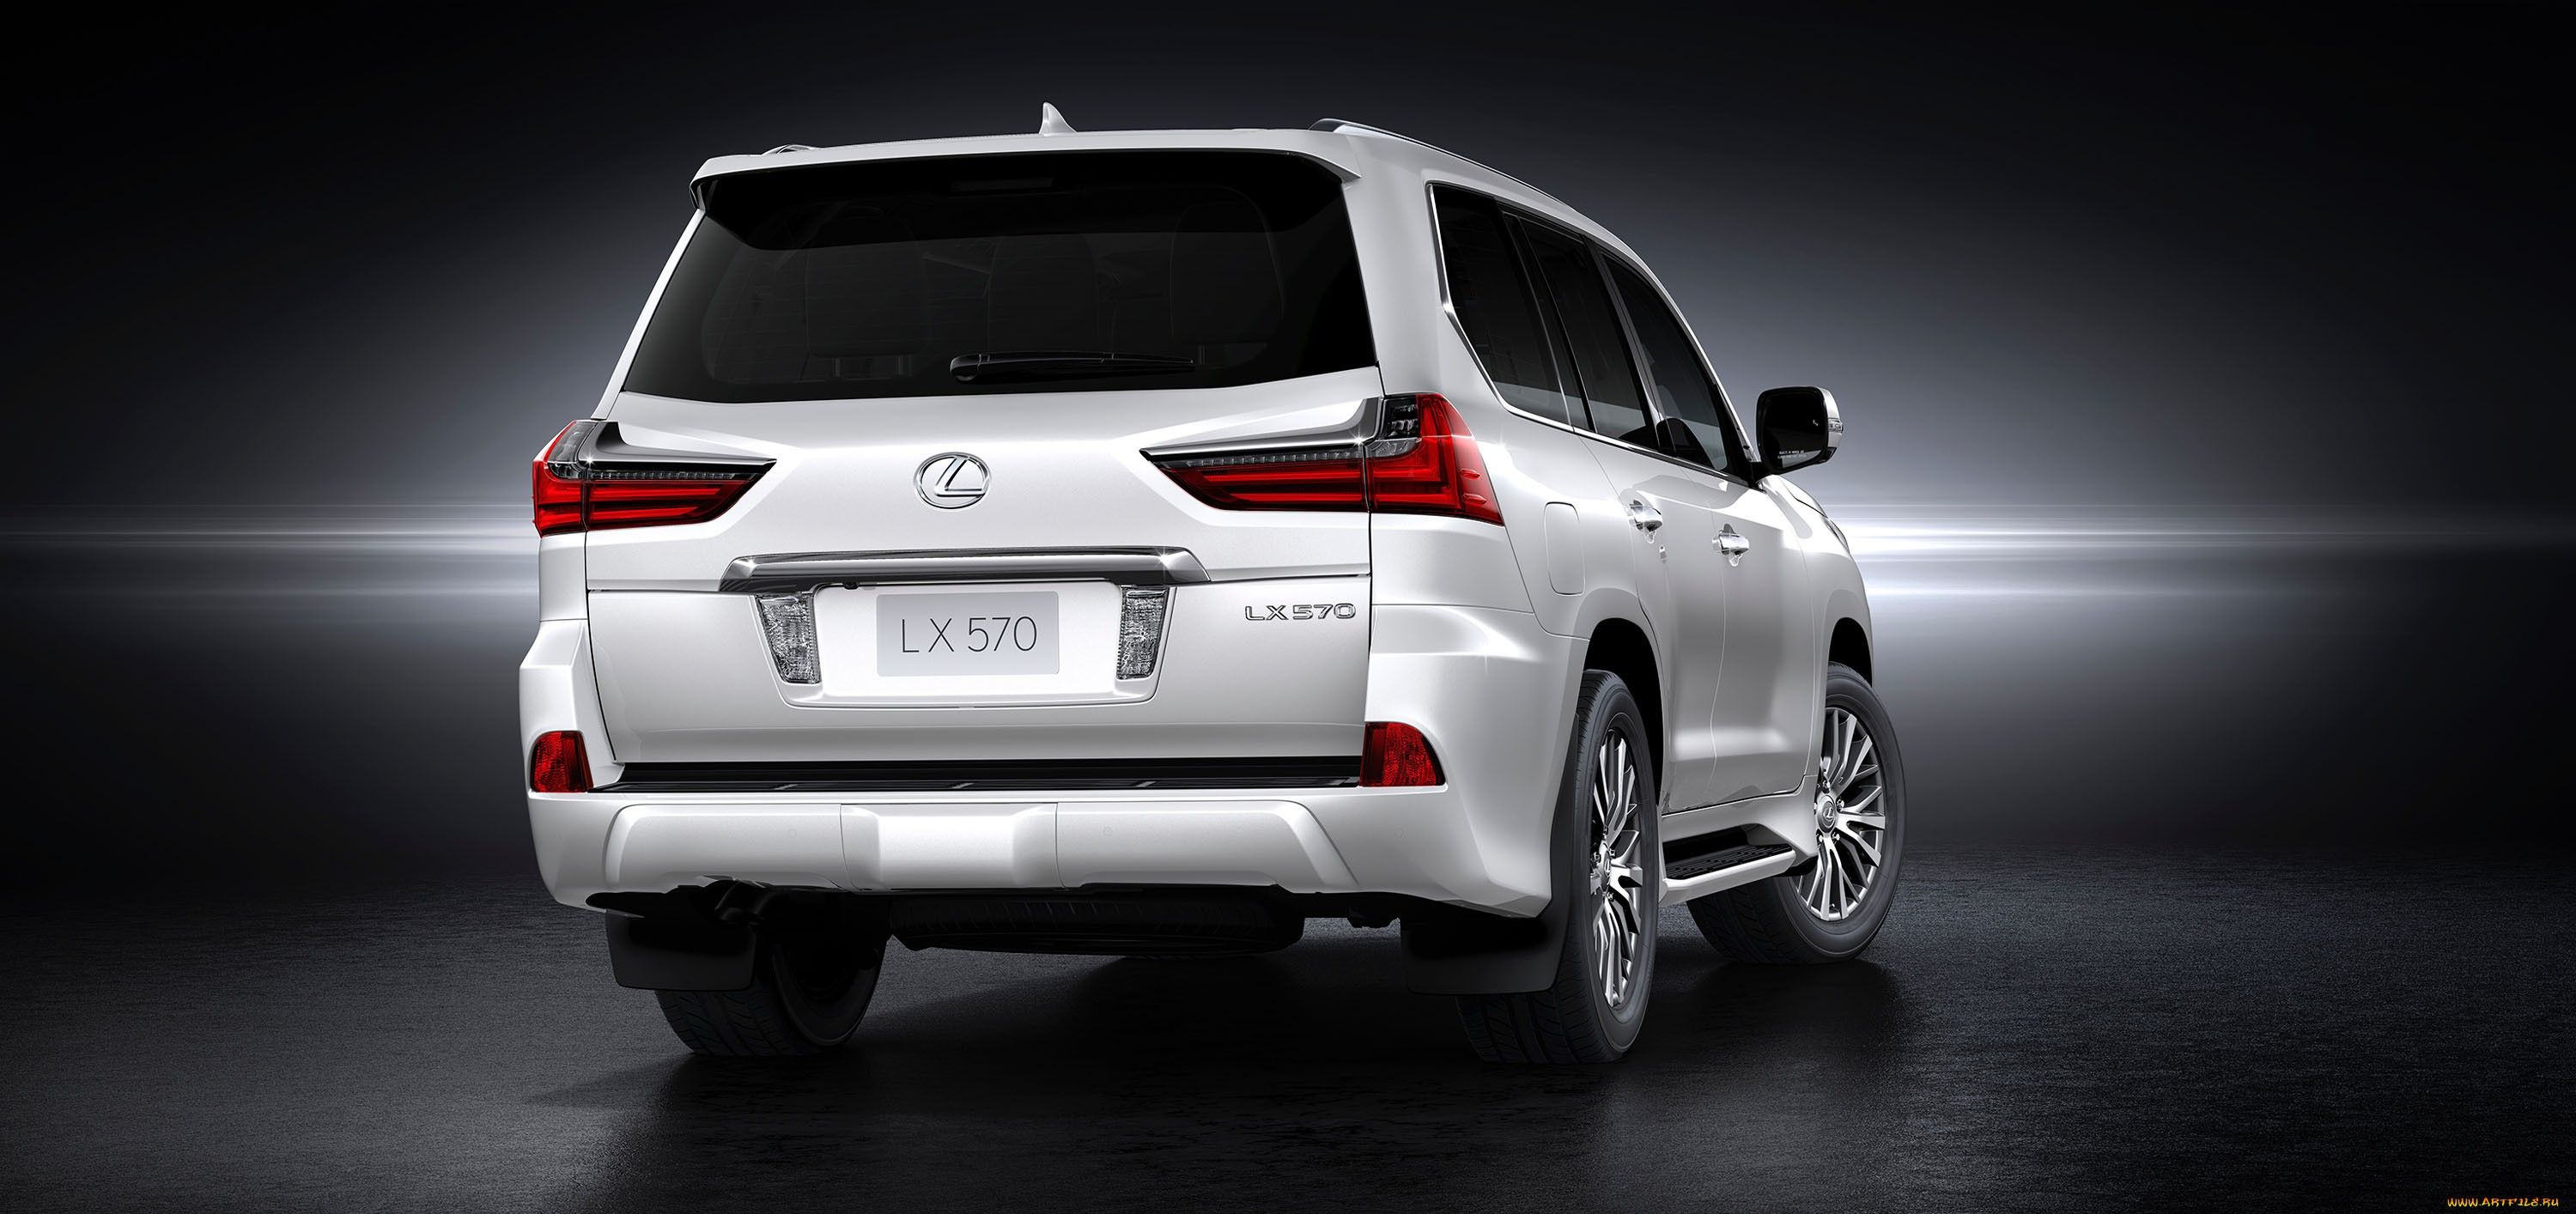 of pic lexus gen present is used meet clublexus cars now your attached page forum right forums thumbnails car img jm